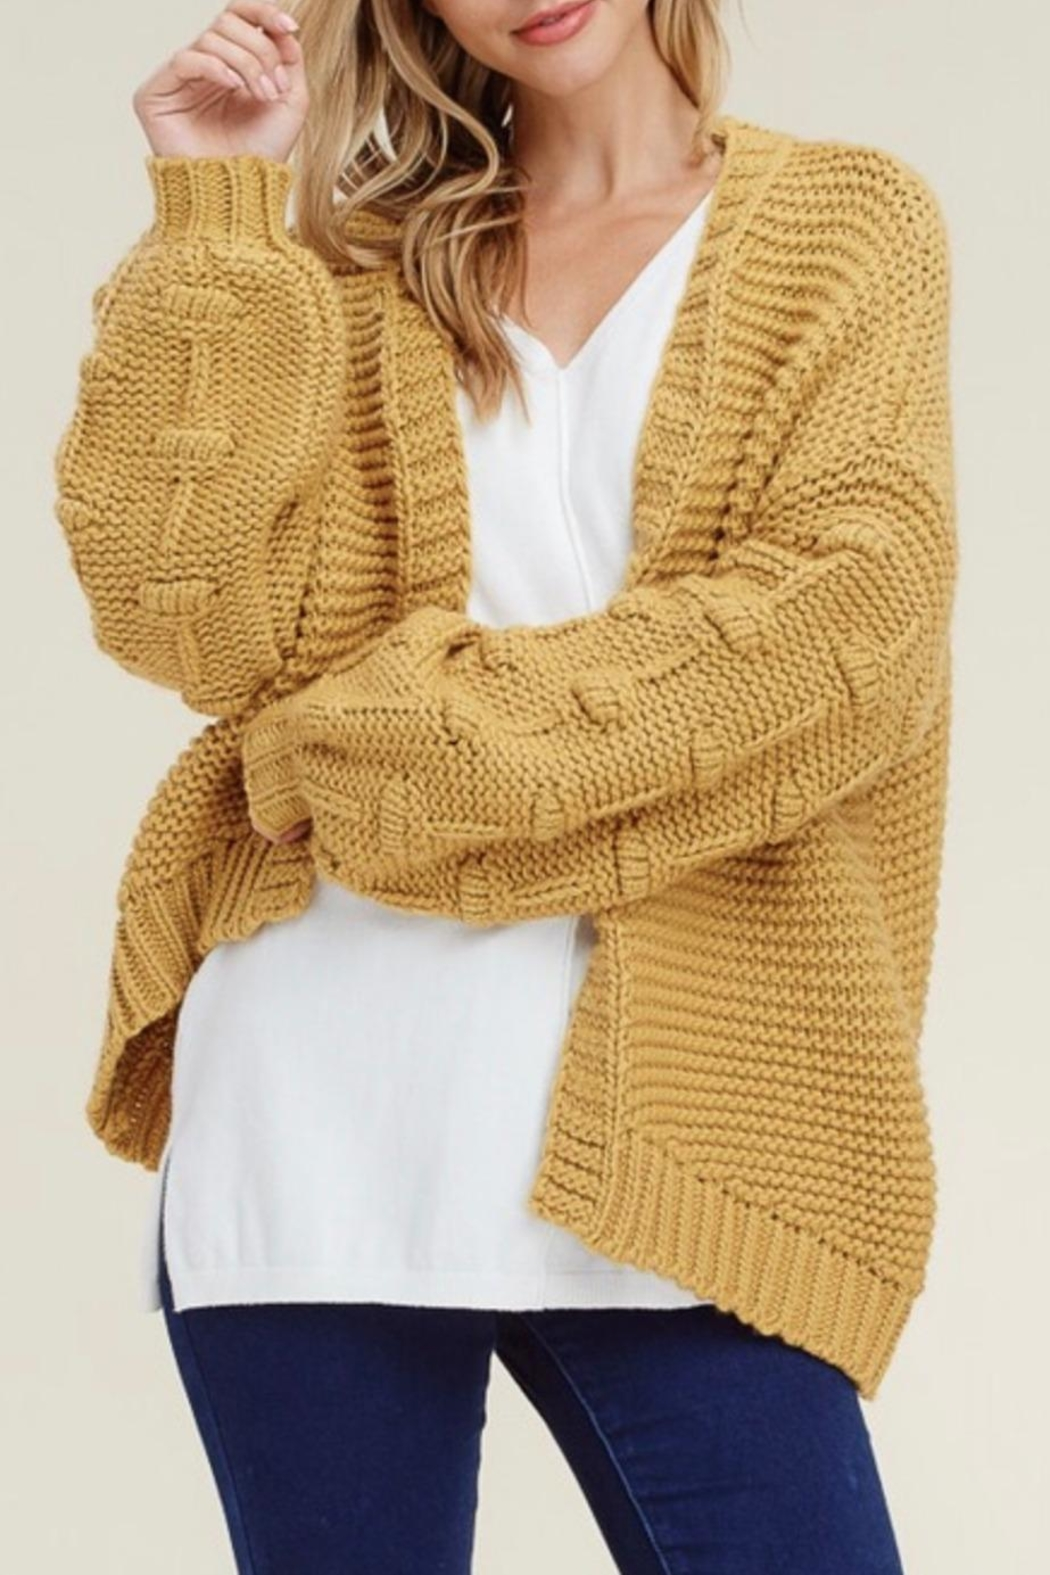 45e10c0aafb Staccato Oversized Mustard Cardigan from Ohio by The Co-Op on ...